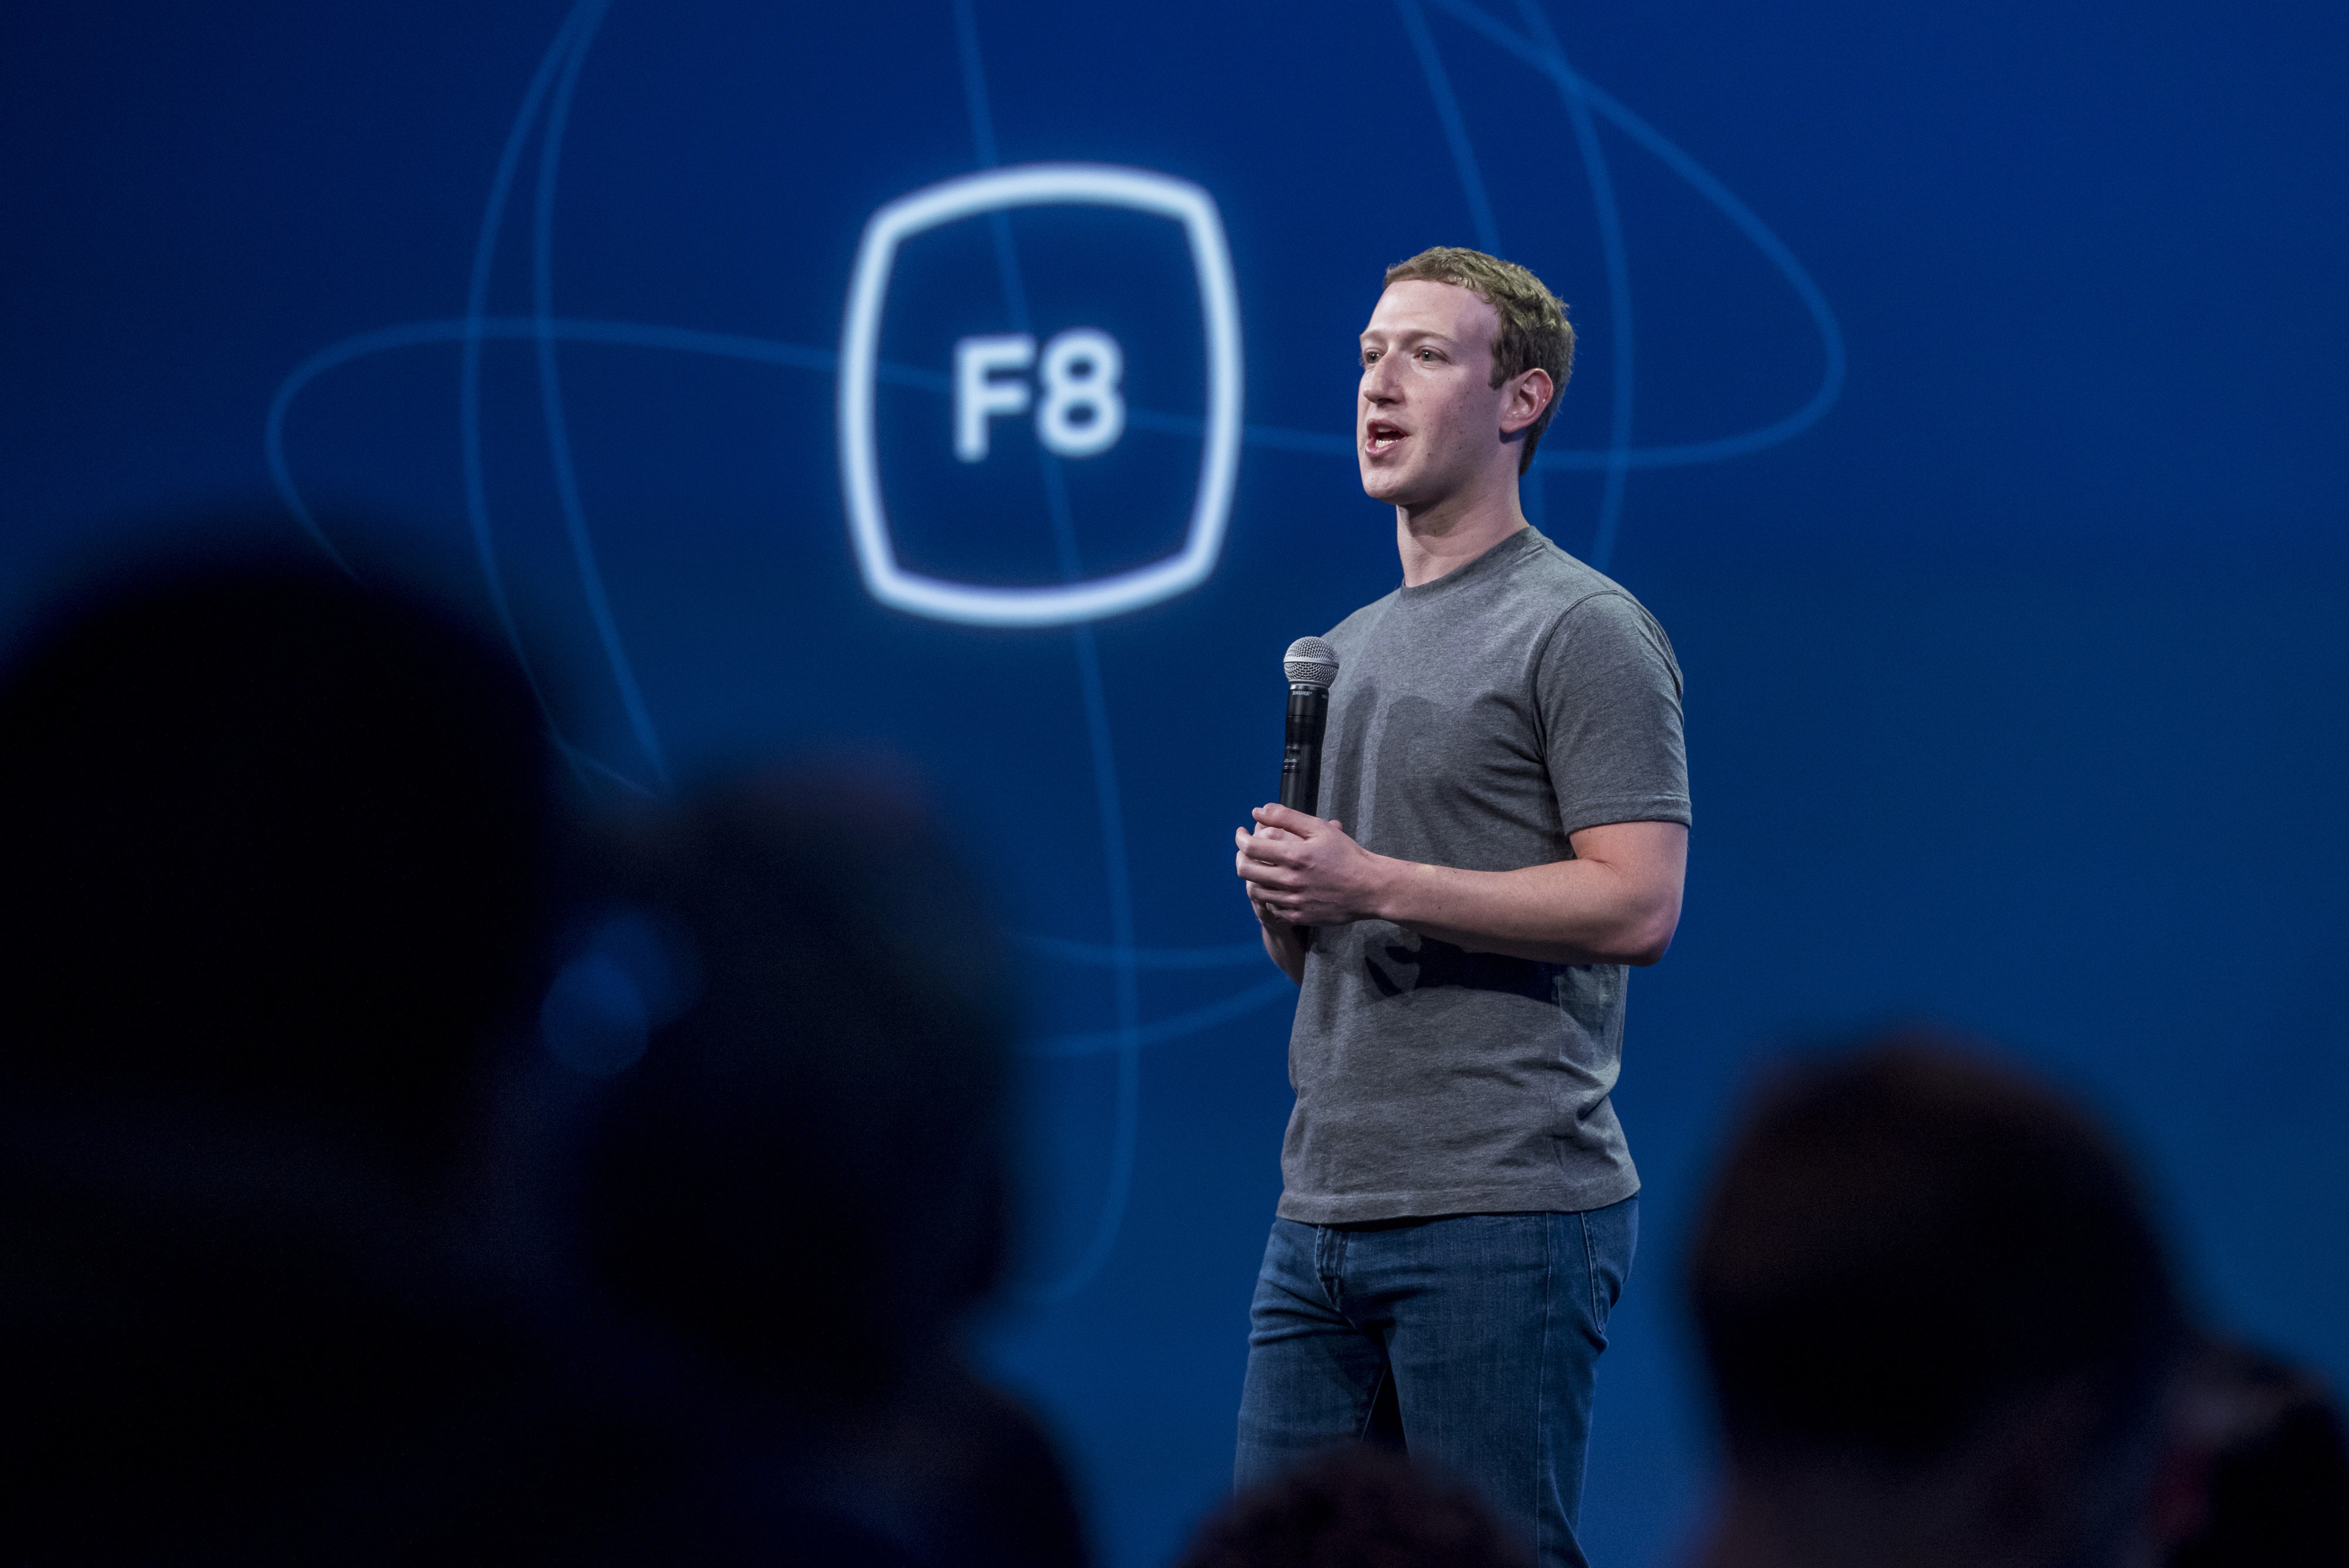 Facebook CEO Mark Zuckerberg at Facebook's F8.